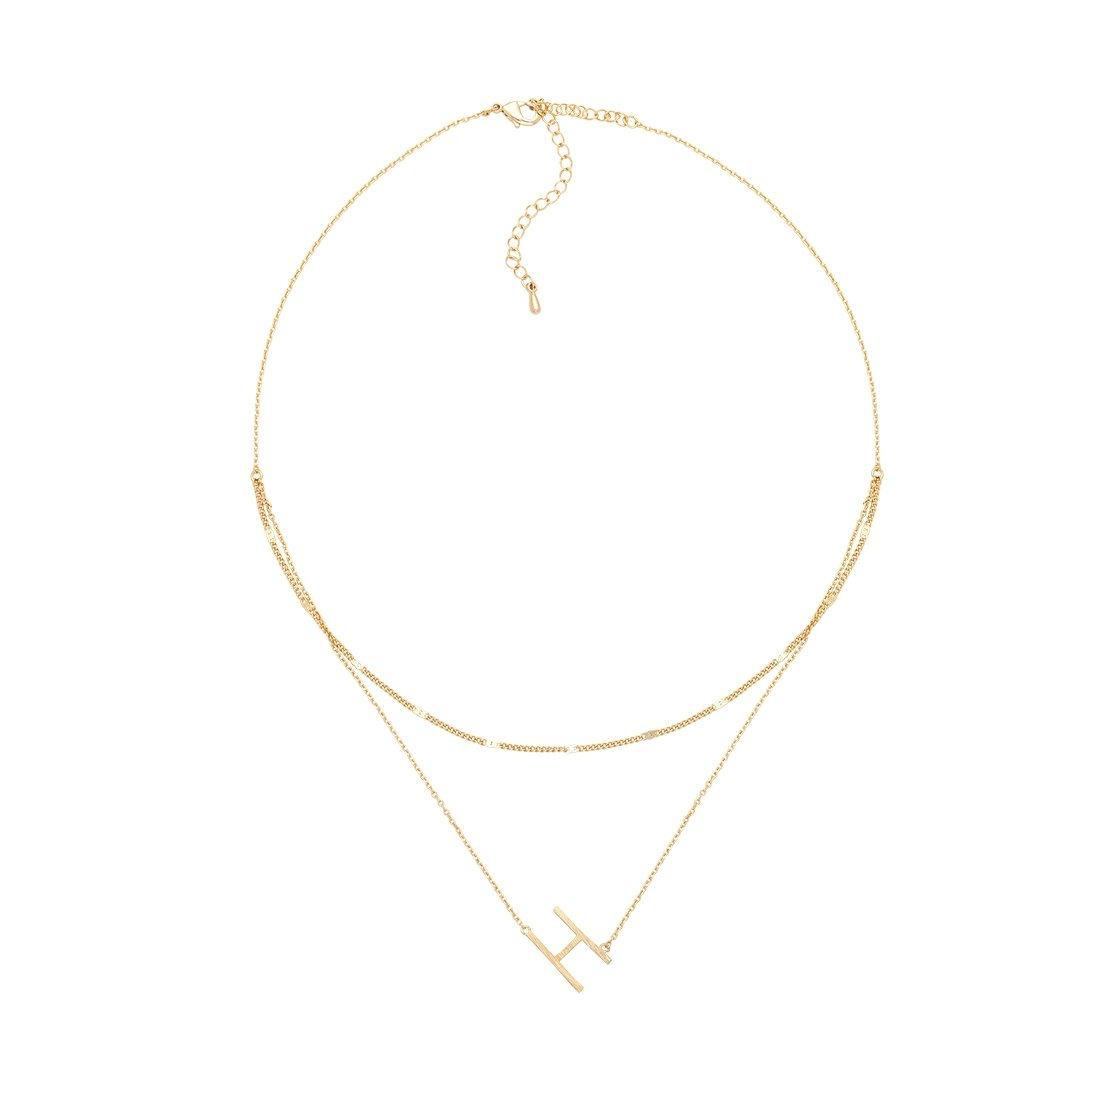 H Gold Double Chain Necklace